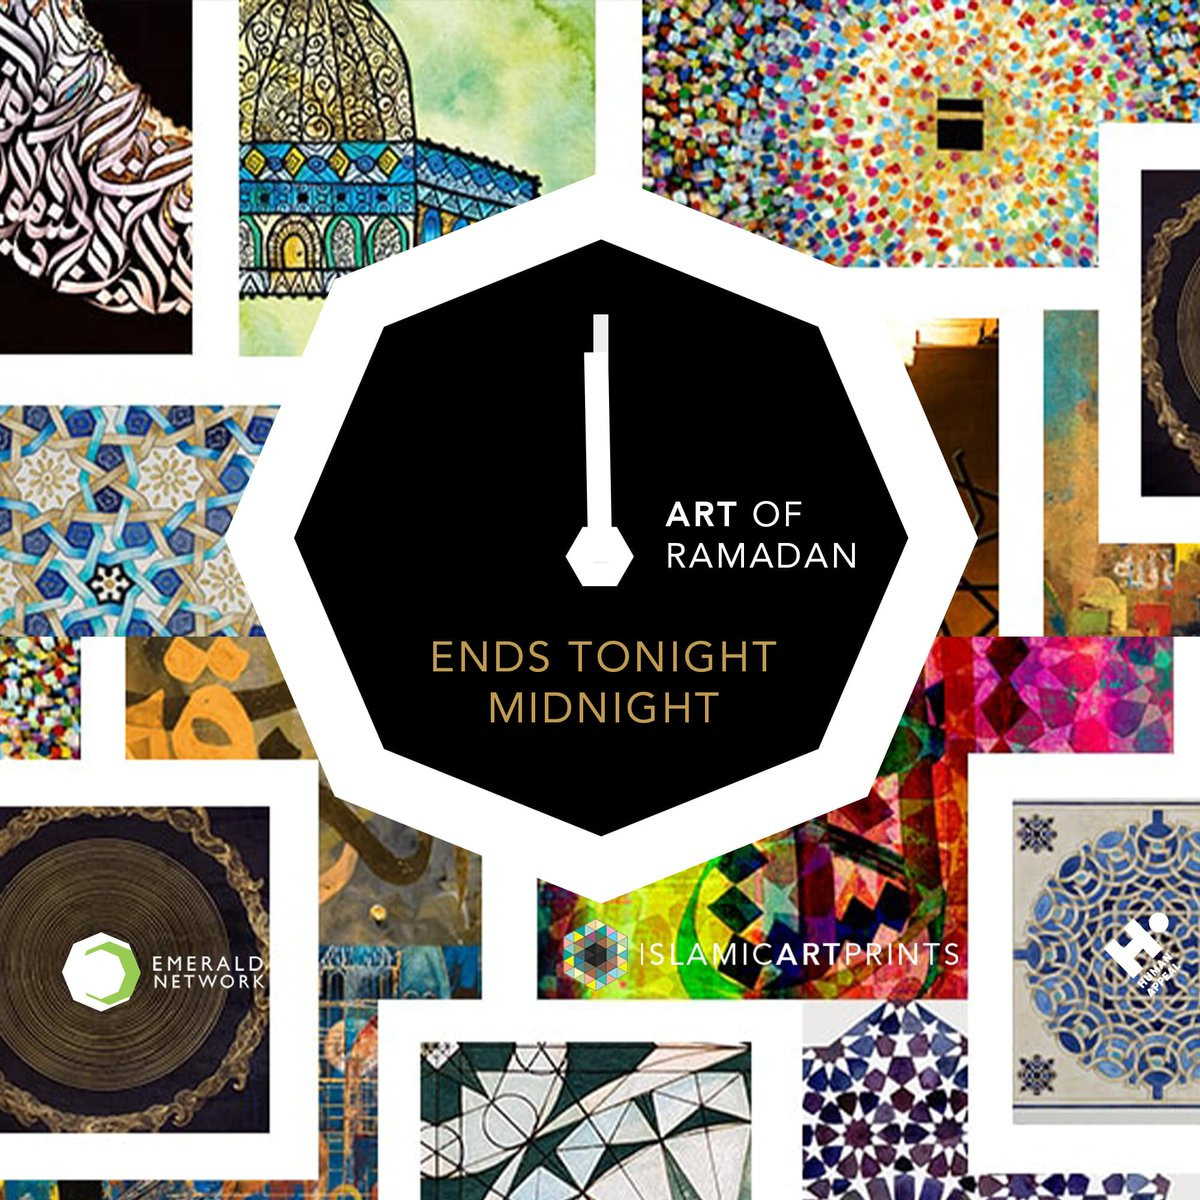 Ending tonight midnight! #ArtofRamadan campaign - thank you to all who have supported-  Visit https://t.co/pbEEPOFB0W ********************************* Offer ends 31.5.20 tonight midnight // #islamicartprint #contemporaryart #geometricart #calligraphy #charity #creatives https://t.co/0DPkxv4mh0